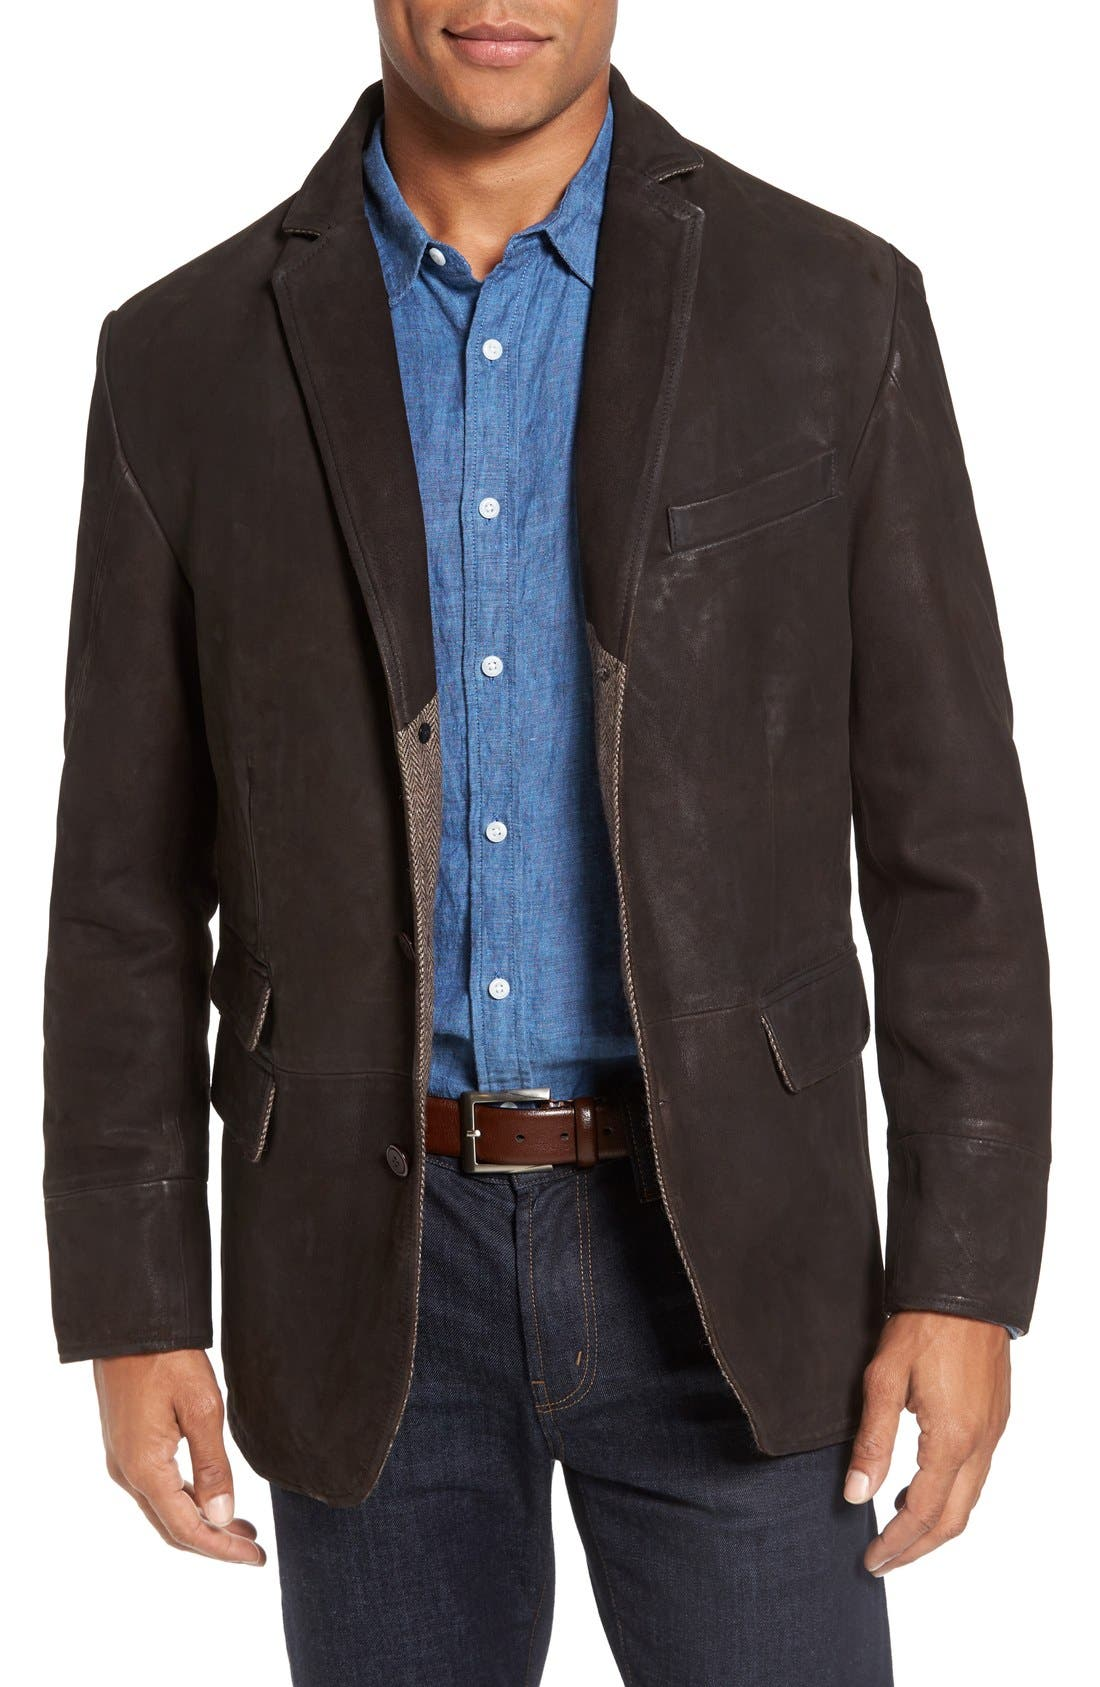 Distressed Leather Hybrid Coat,                             Alternate thumbnail 10, color,                             CHOCOLATE BROWN